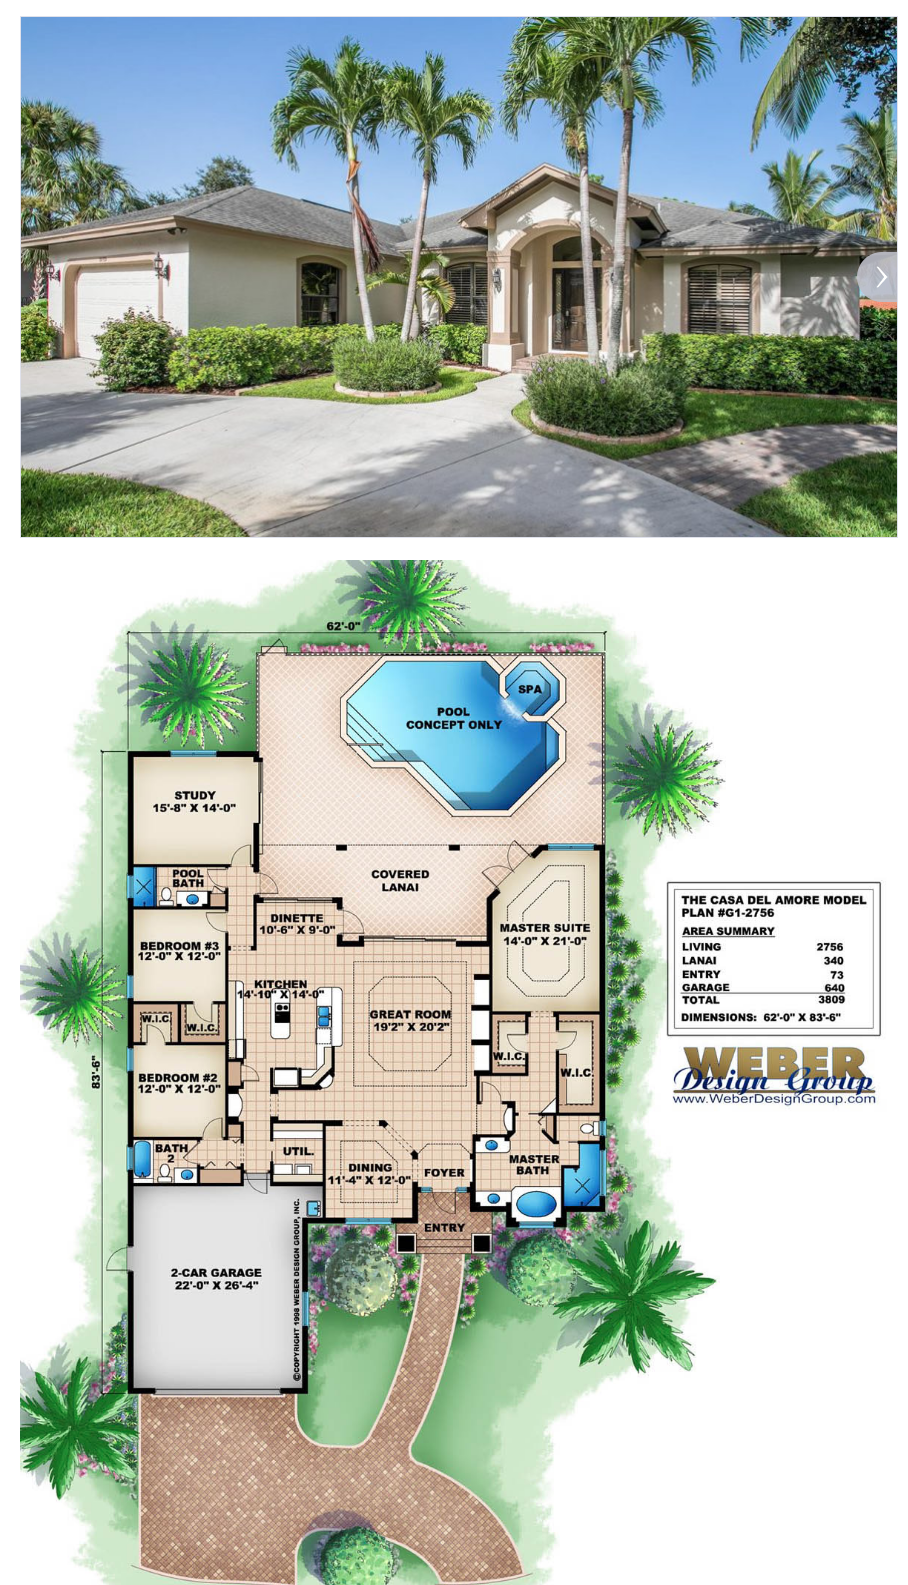 Waterfront House Plan Golf Course Waterfront Lot Home Floor Plan Pool House Plans Waterfront Homes House Floor Plans